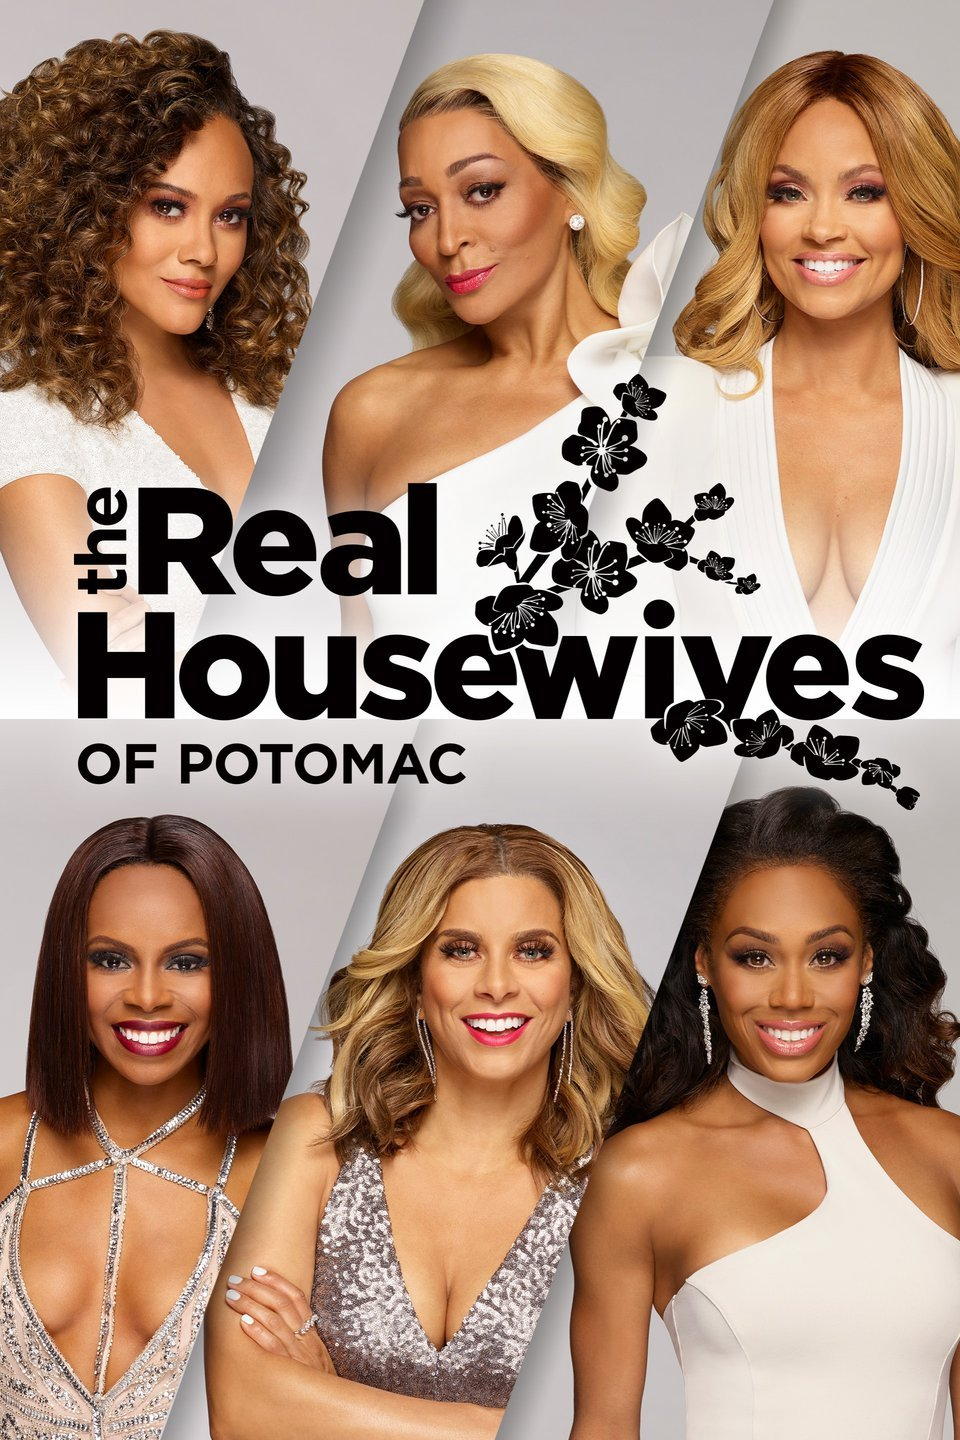 The Real Housewives of Potomac Season 5 Episode 9